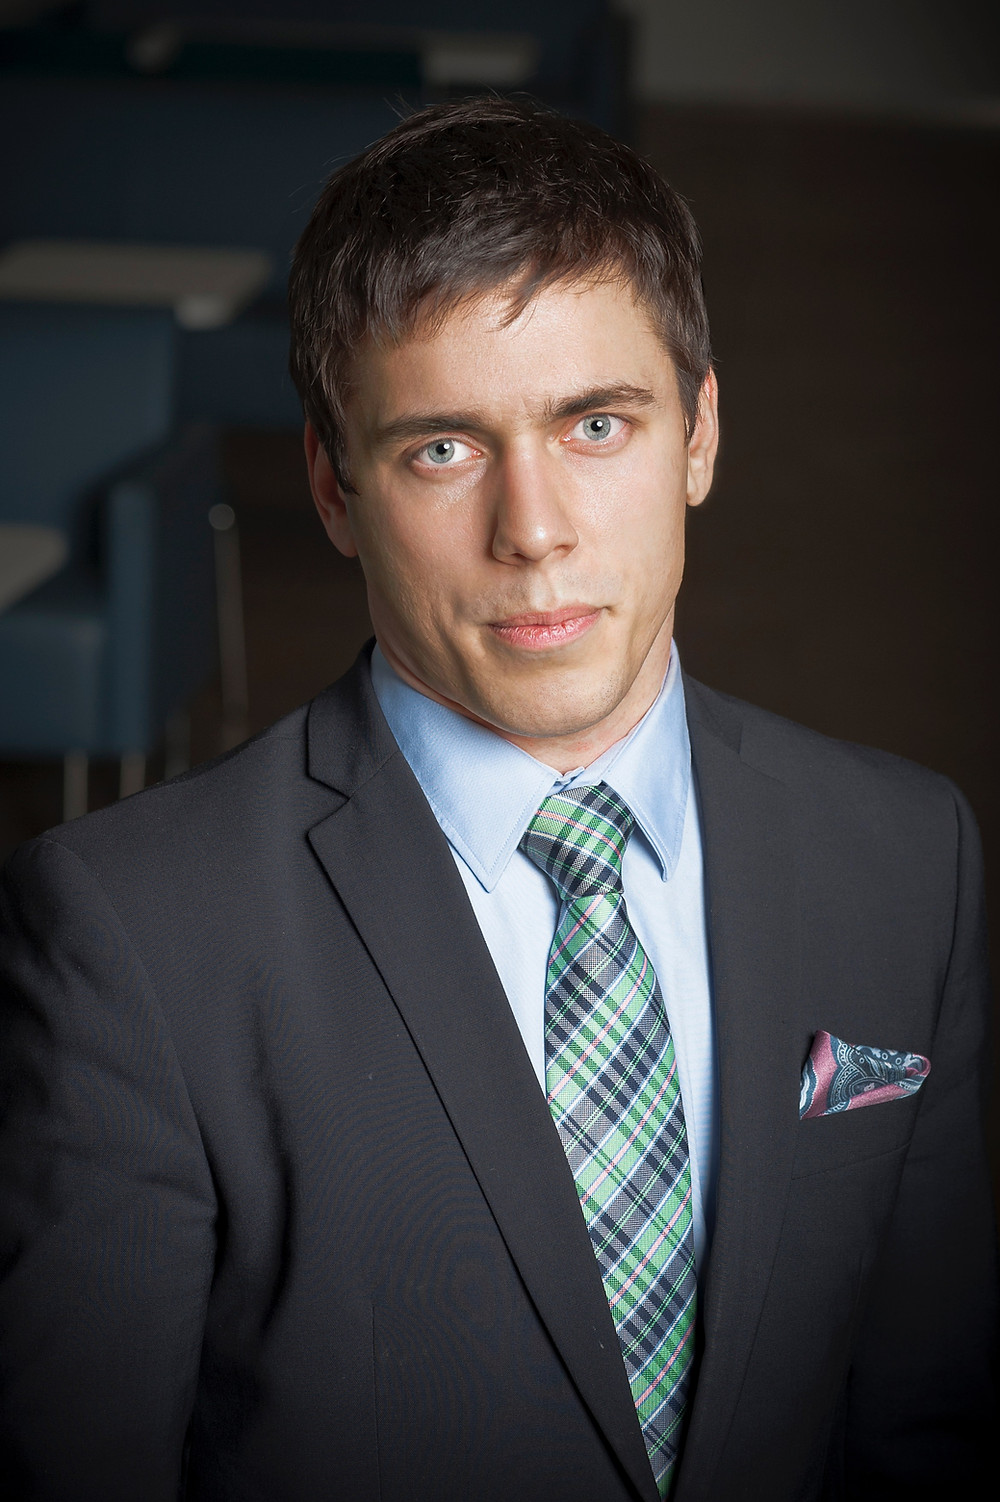 A picture of Dennis. He is wearing a suit and tie, has short, dark hair and is looking into the camera with a bit of a smile.